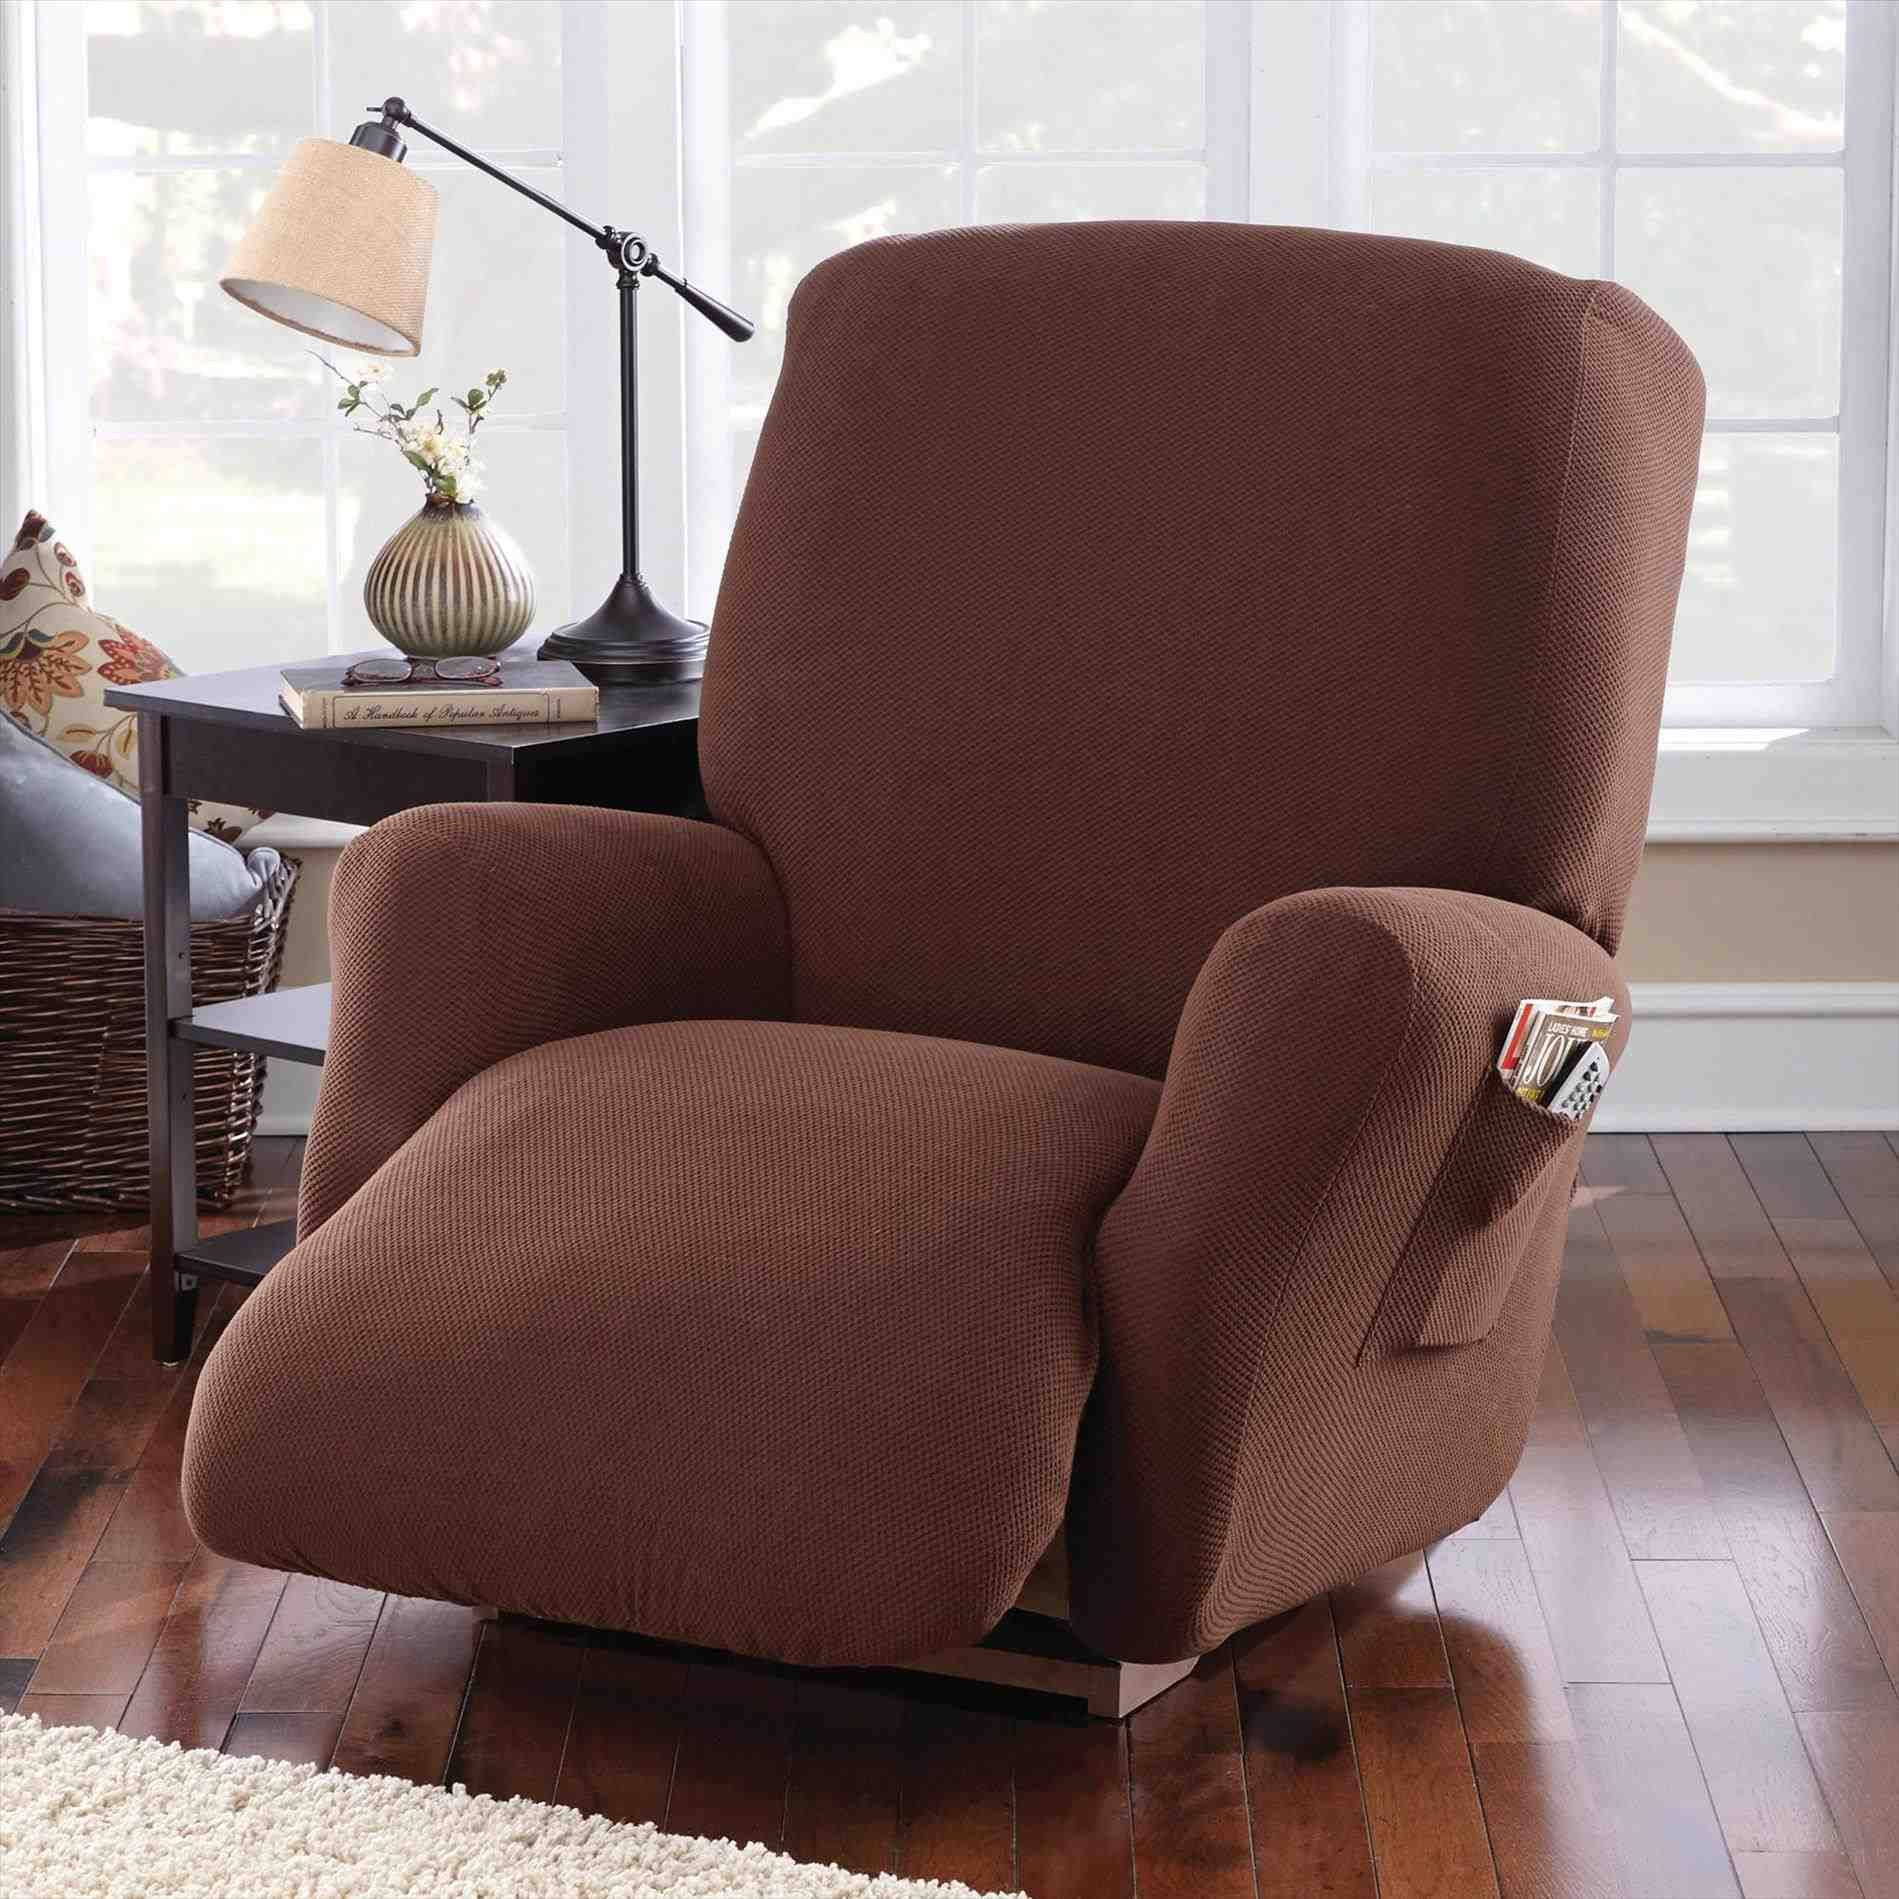 Cheap Recliner Covers Recliner Slipcover Round Sofa Chair